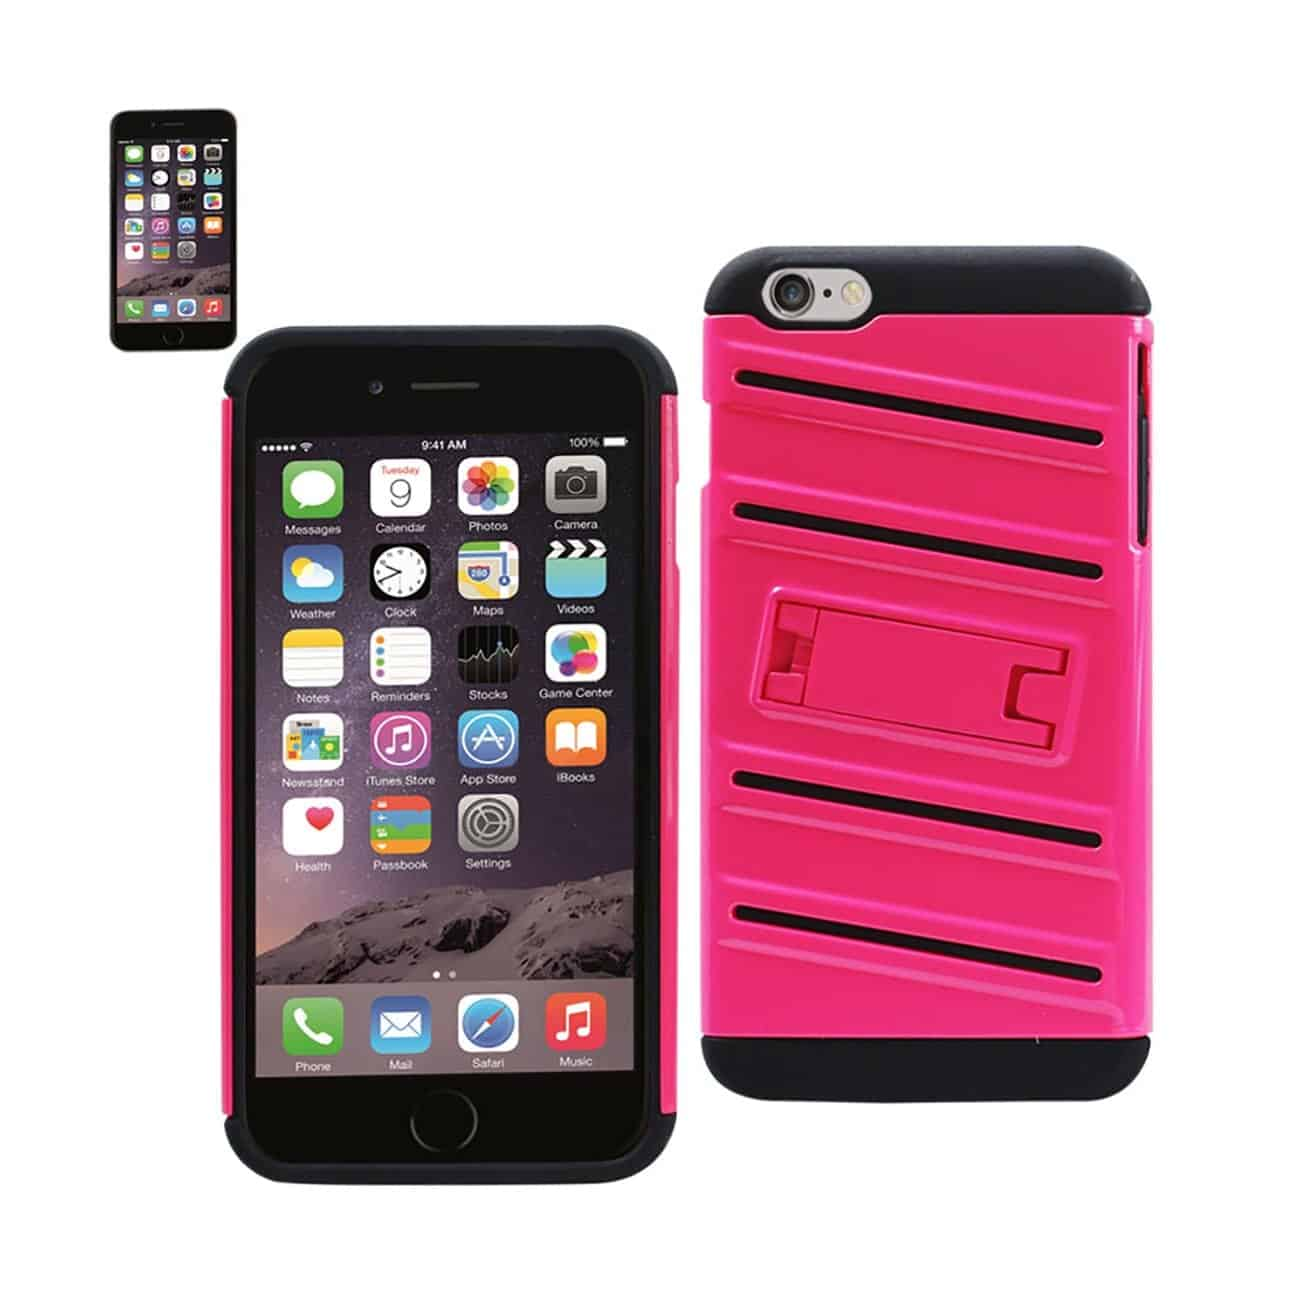 IPHONE 6 PLUS HYBRID FISHBONE CASE WITH KICKSTAND IN BLACK HOT PINK